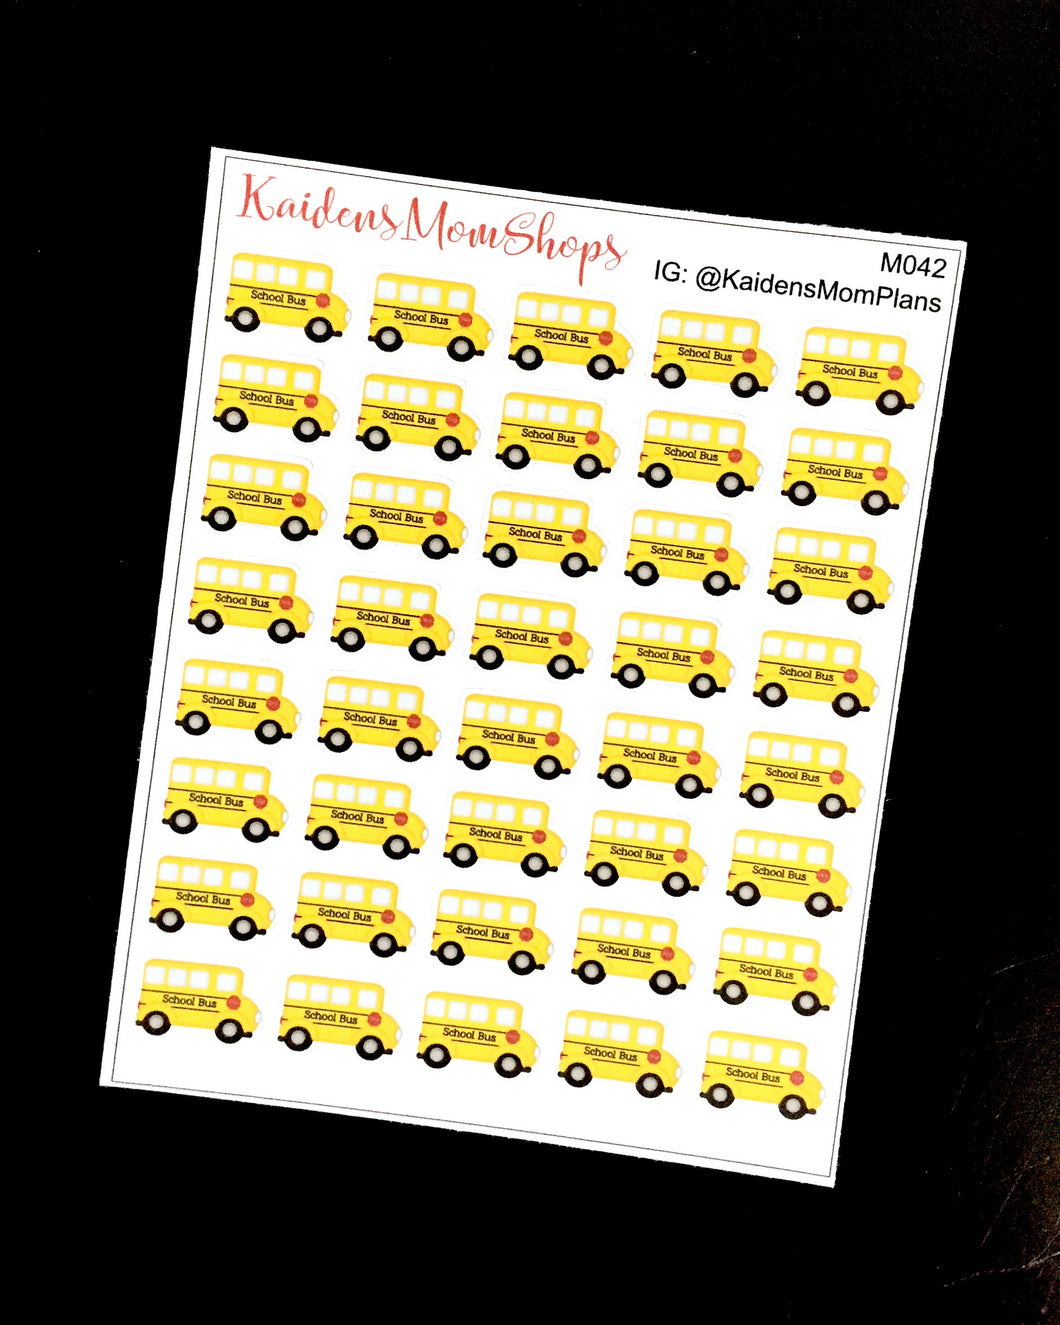 School Bus - Full or Mini Sheet - M042